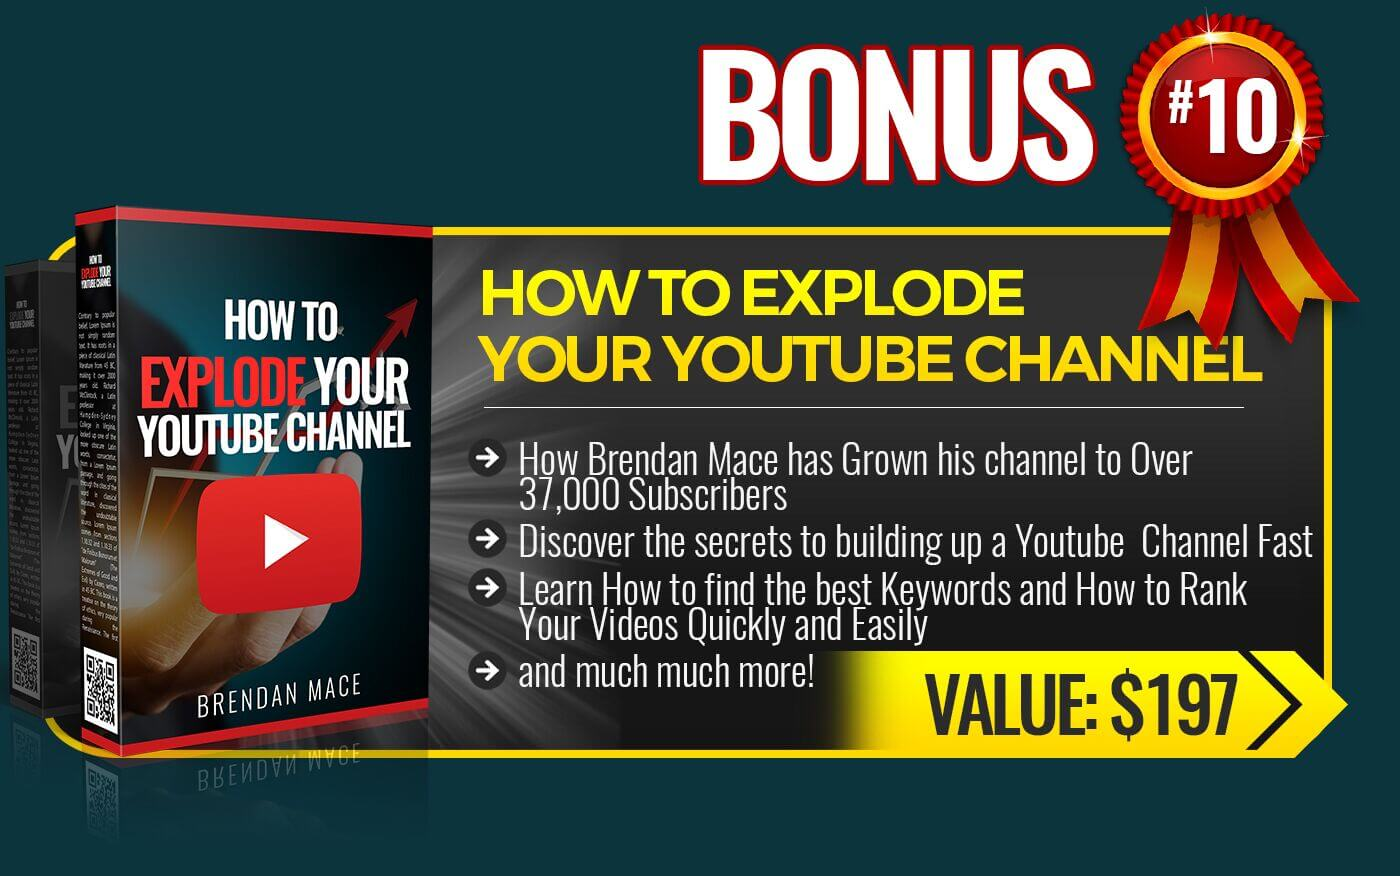 10. How to explode